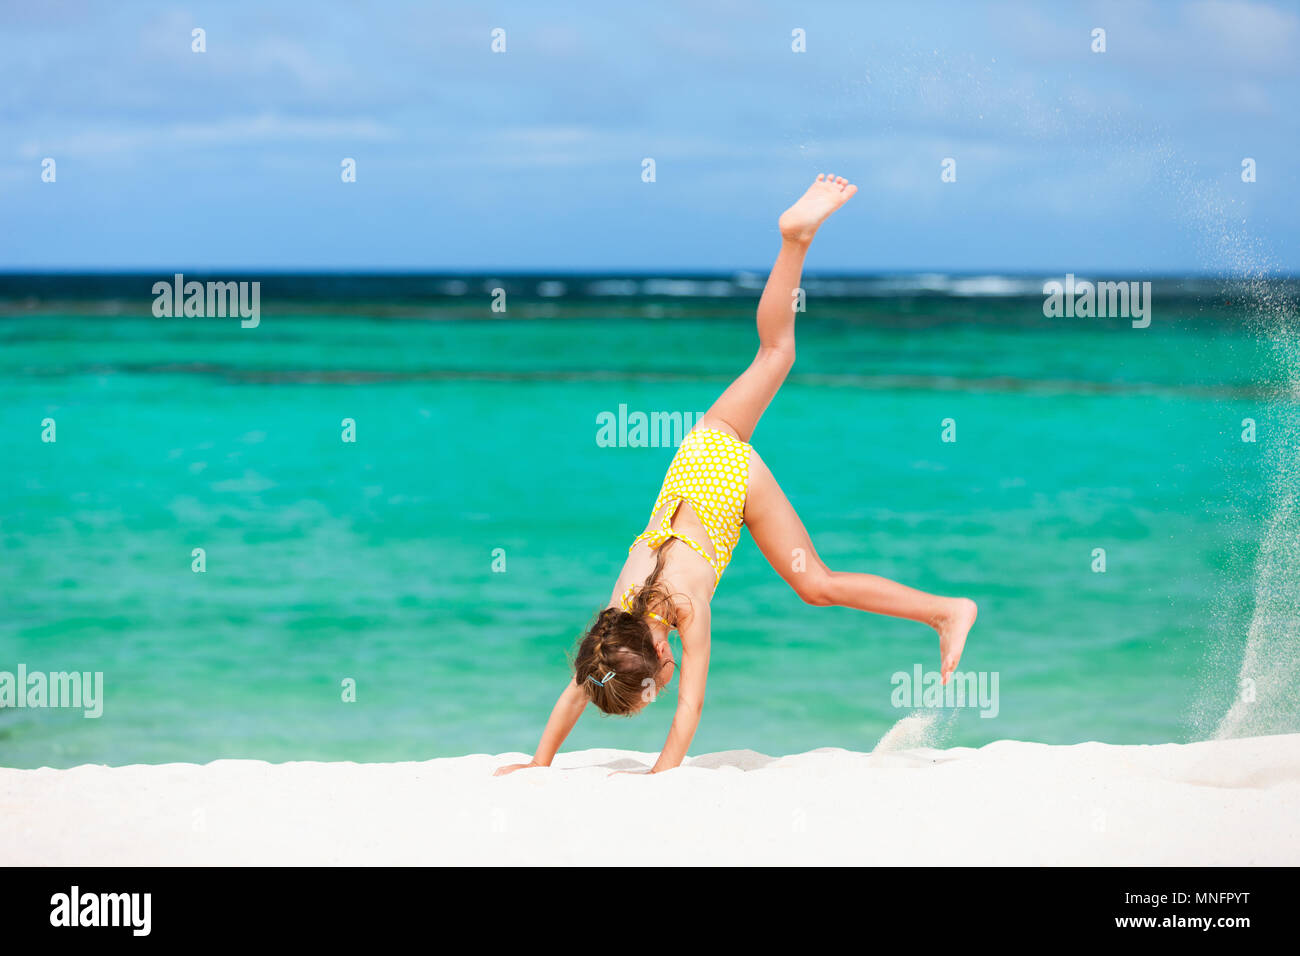 Cute little girl having fun making cartwheel and enjoying vacation on tropical beach with white sand and turquoise ocean water - Stock Image